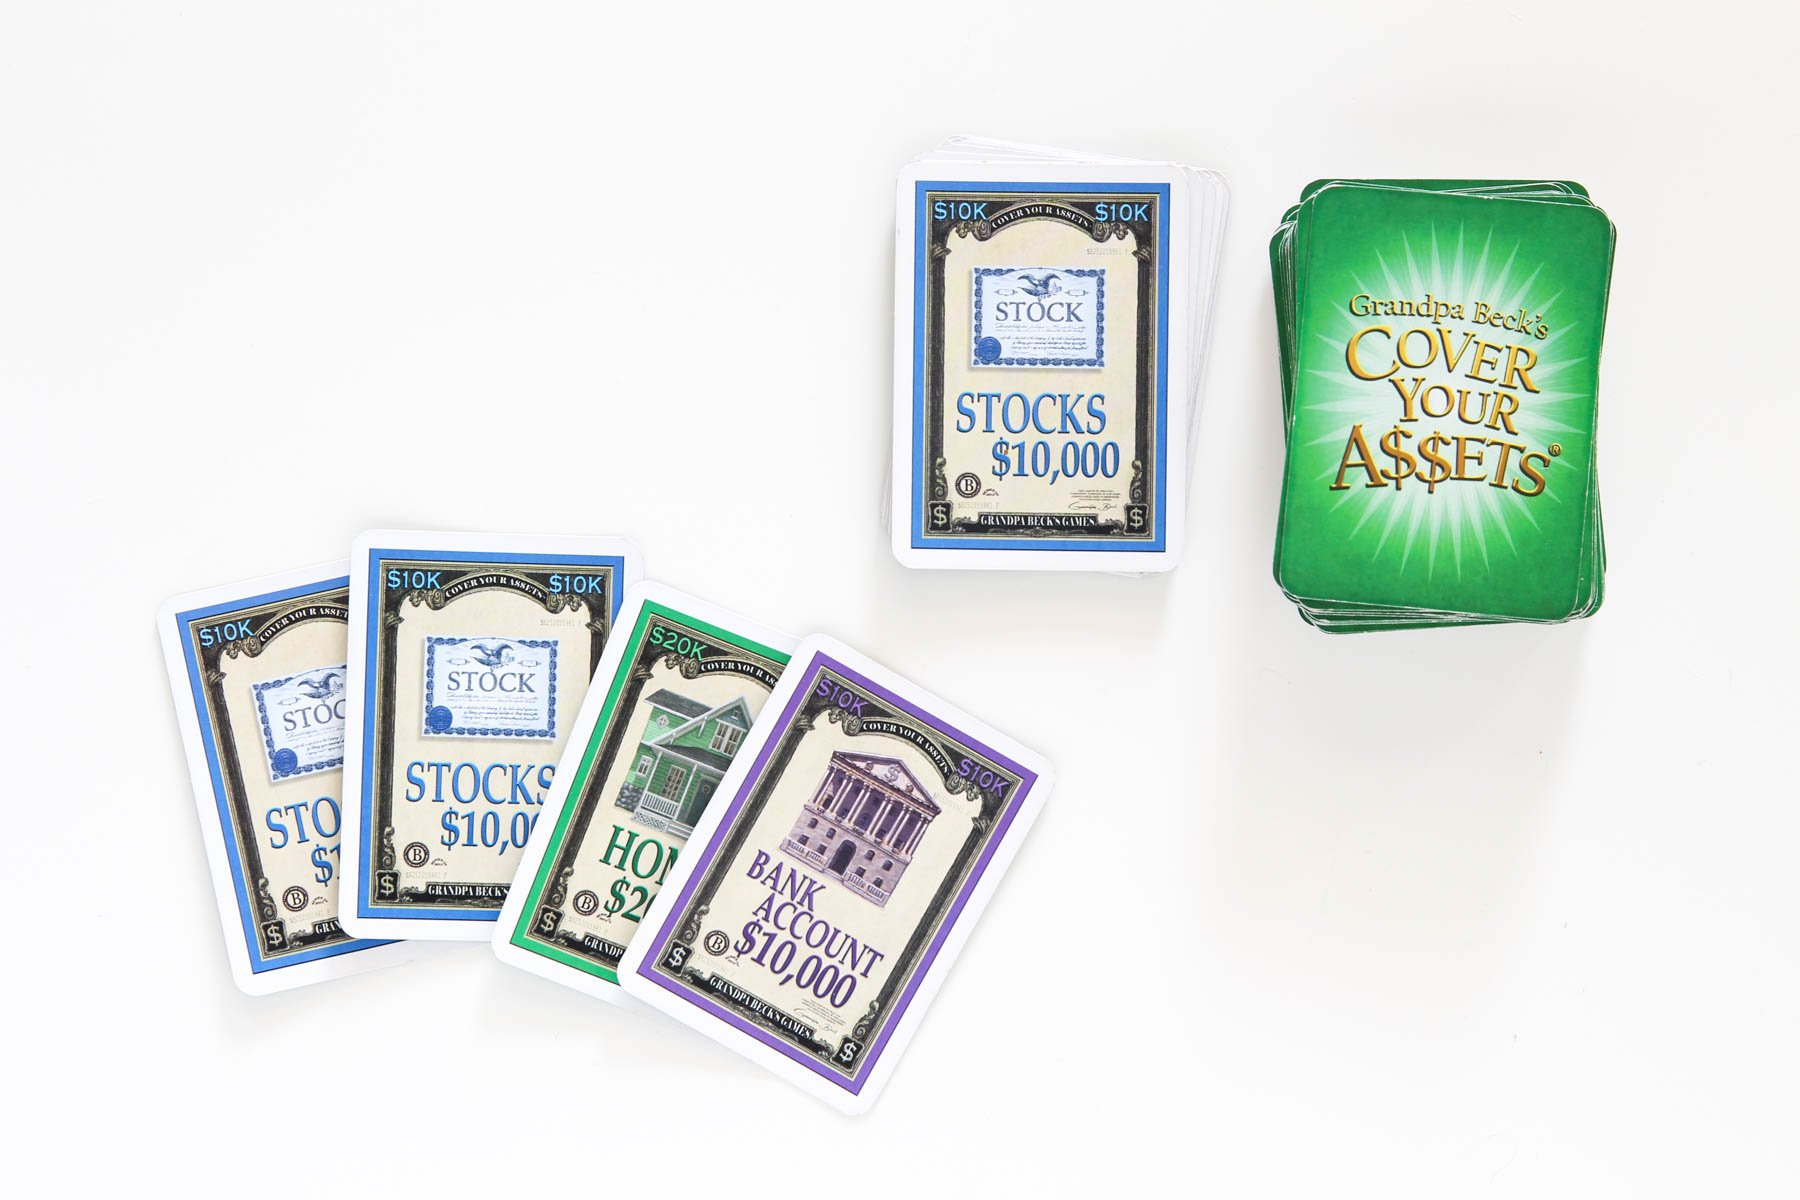 How To Make Matches - Parent's Review of the Cover Your Assets Game via @PagingSupermom